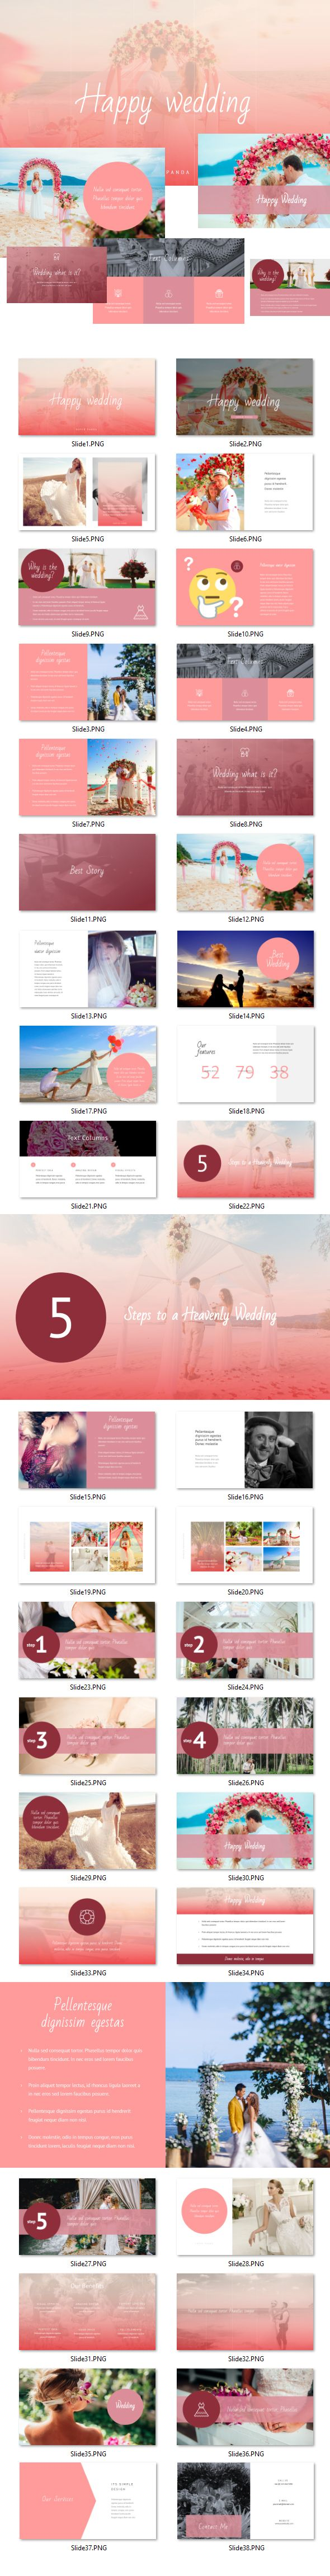 Wedding - #Powerpoint Template - #Presentation Templates Download here: https://graphicriver.net/item/wedding-powerpoint-template/19617748?ref=alena994